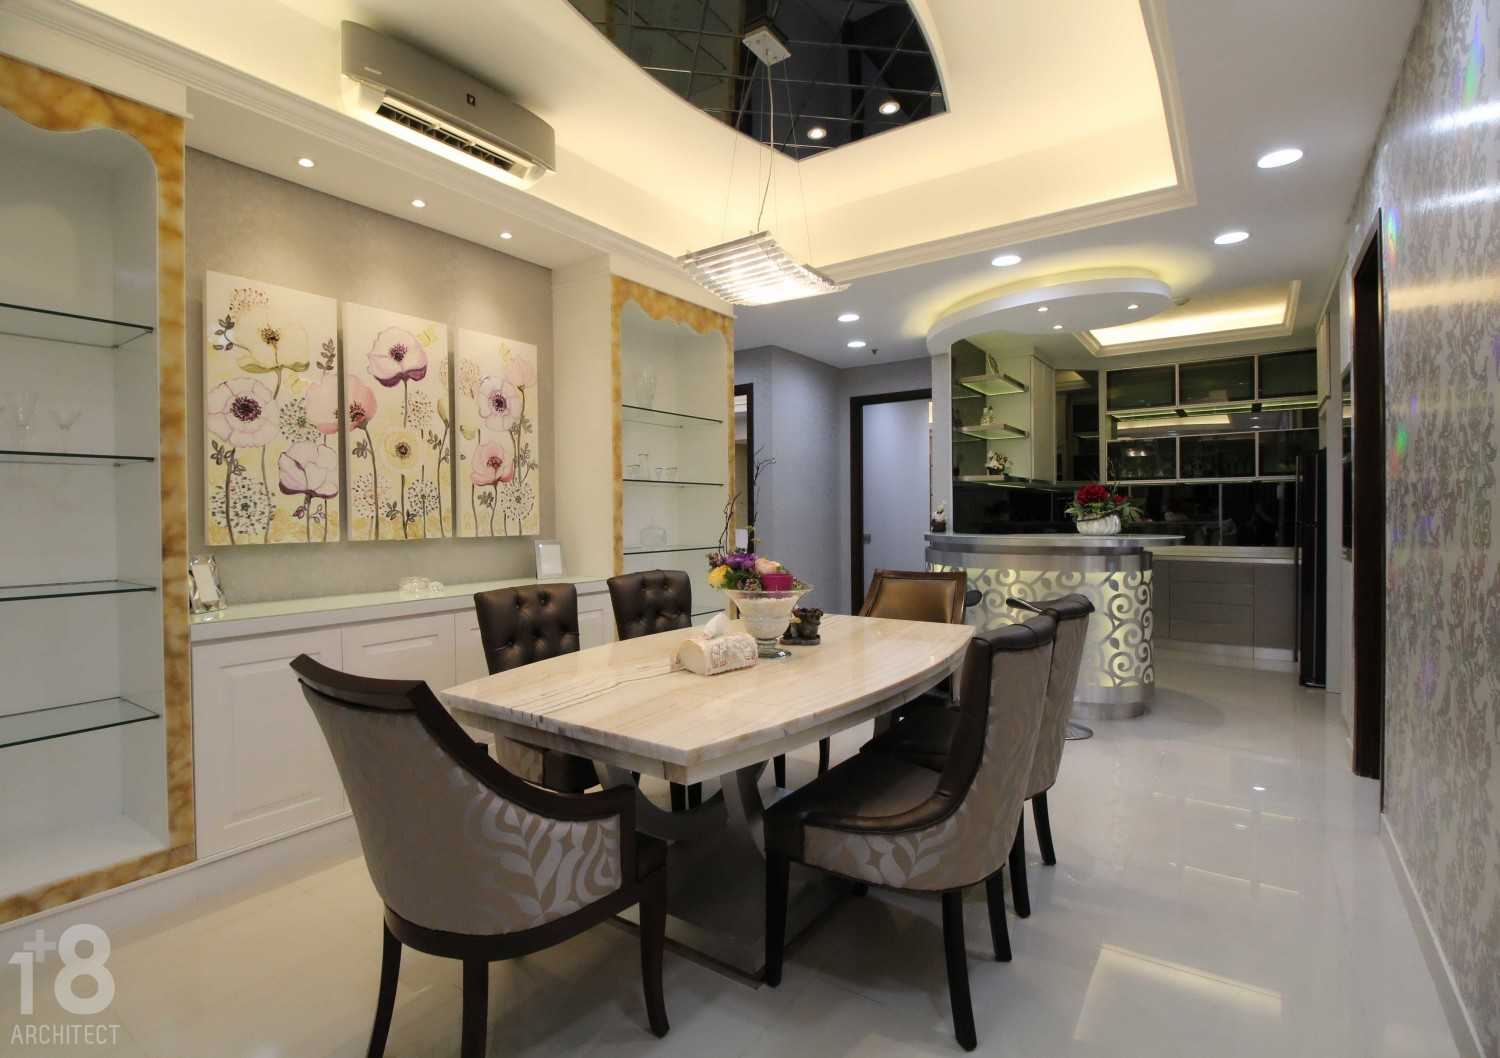 1+8 Architect St. Moritz, Presidential Tower Suite Room Jakarta, Indonesia Jakarta, Indonesia Dining Room Modern 23009